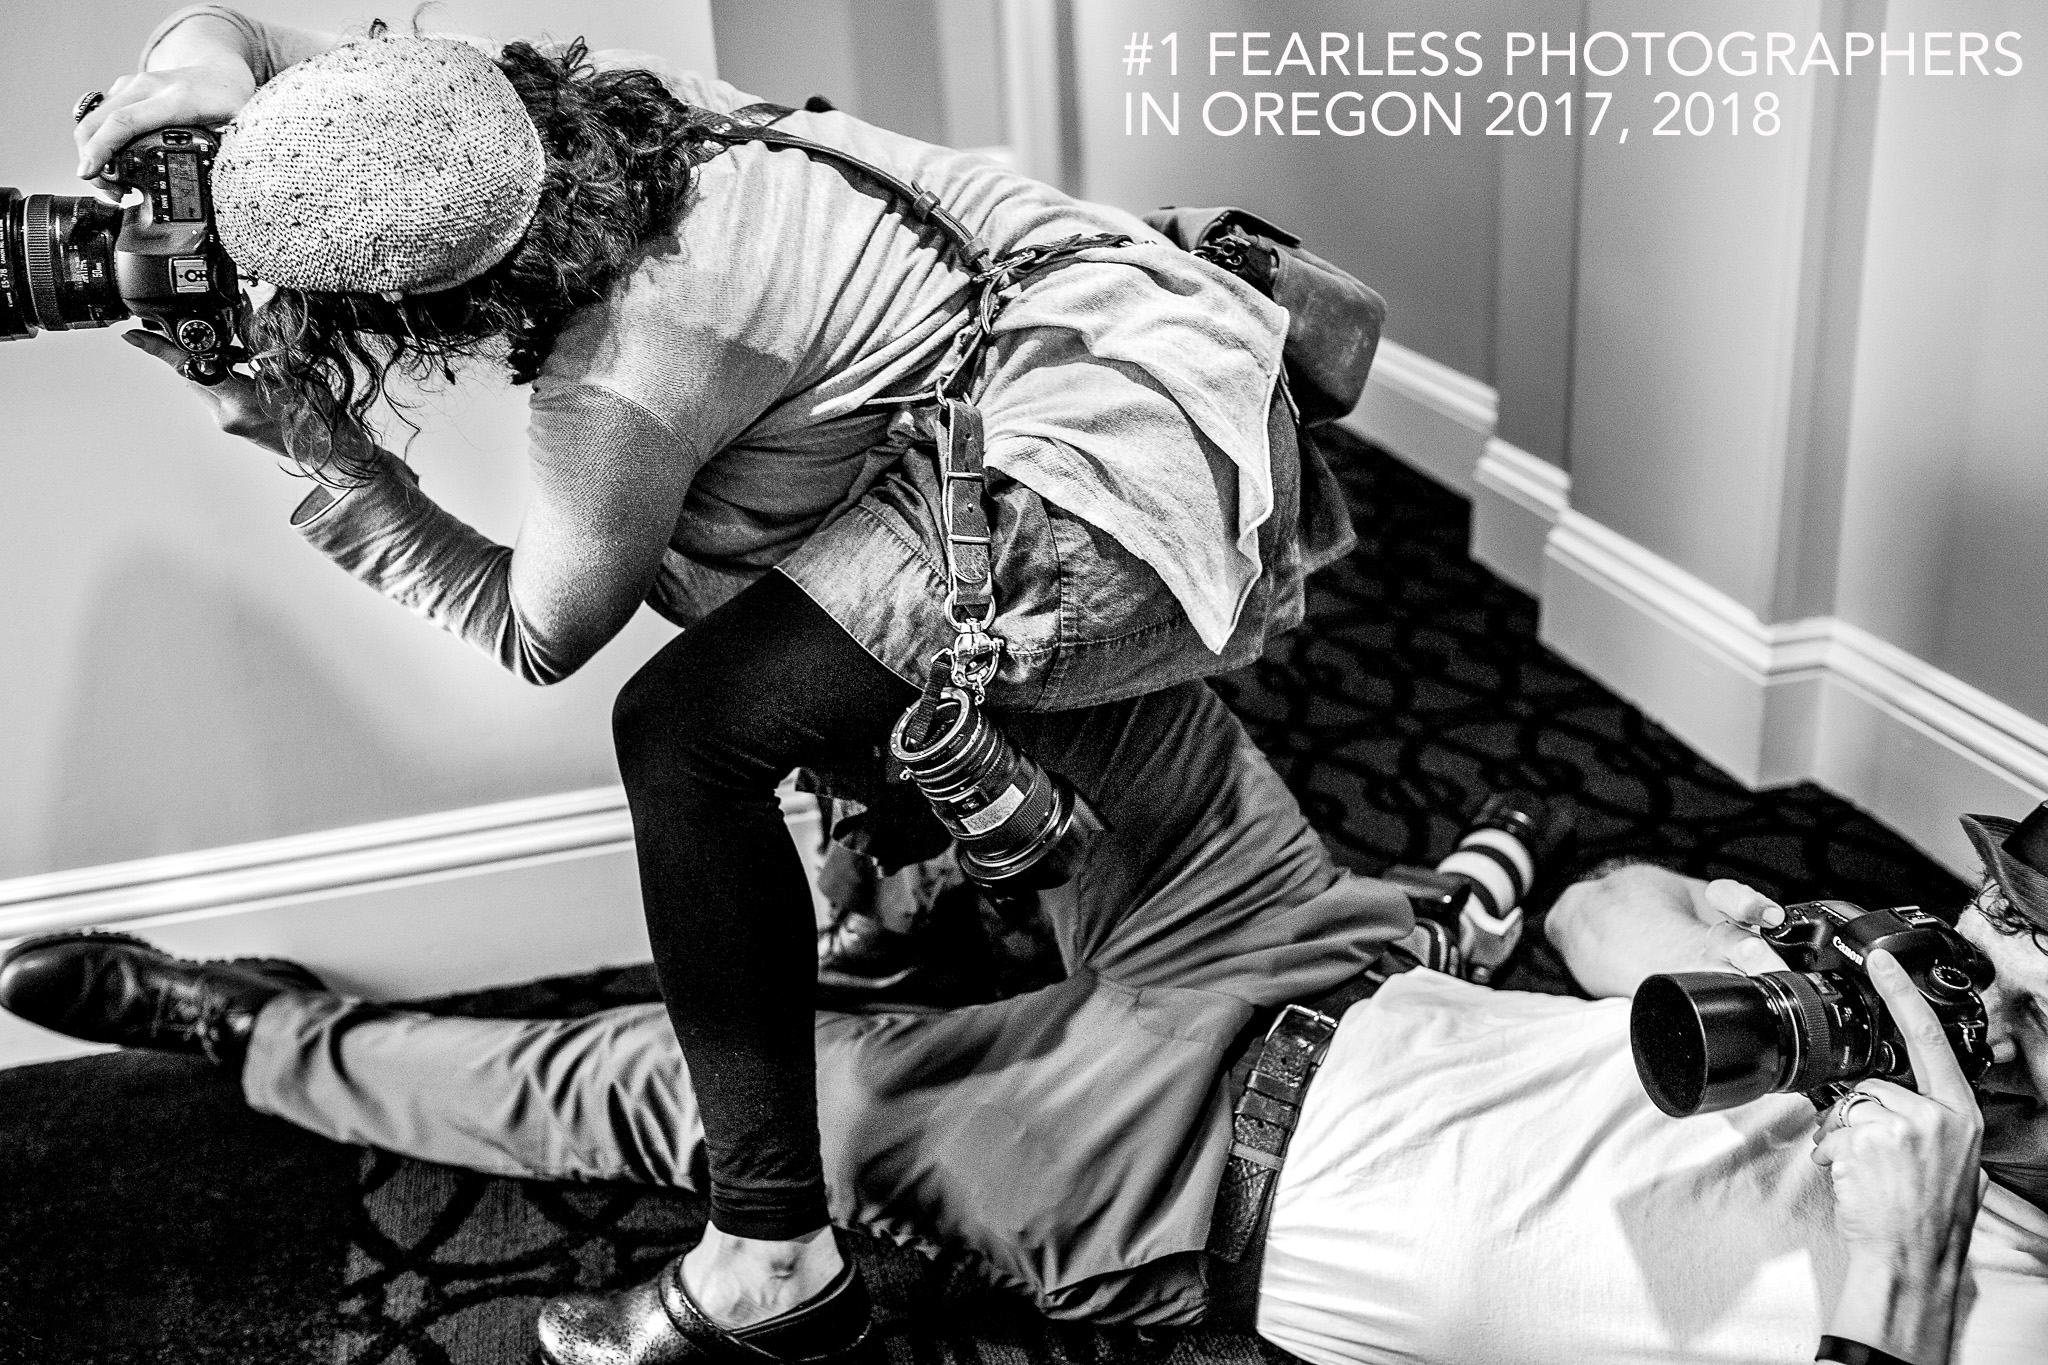 #1 Fearless Photographers in Oregon 2017 2018